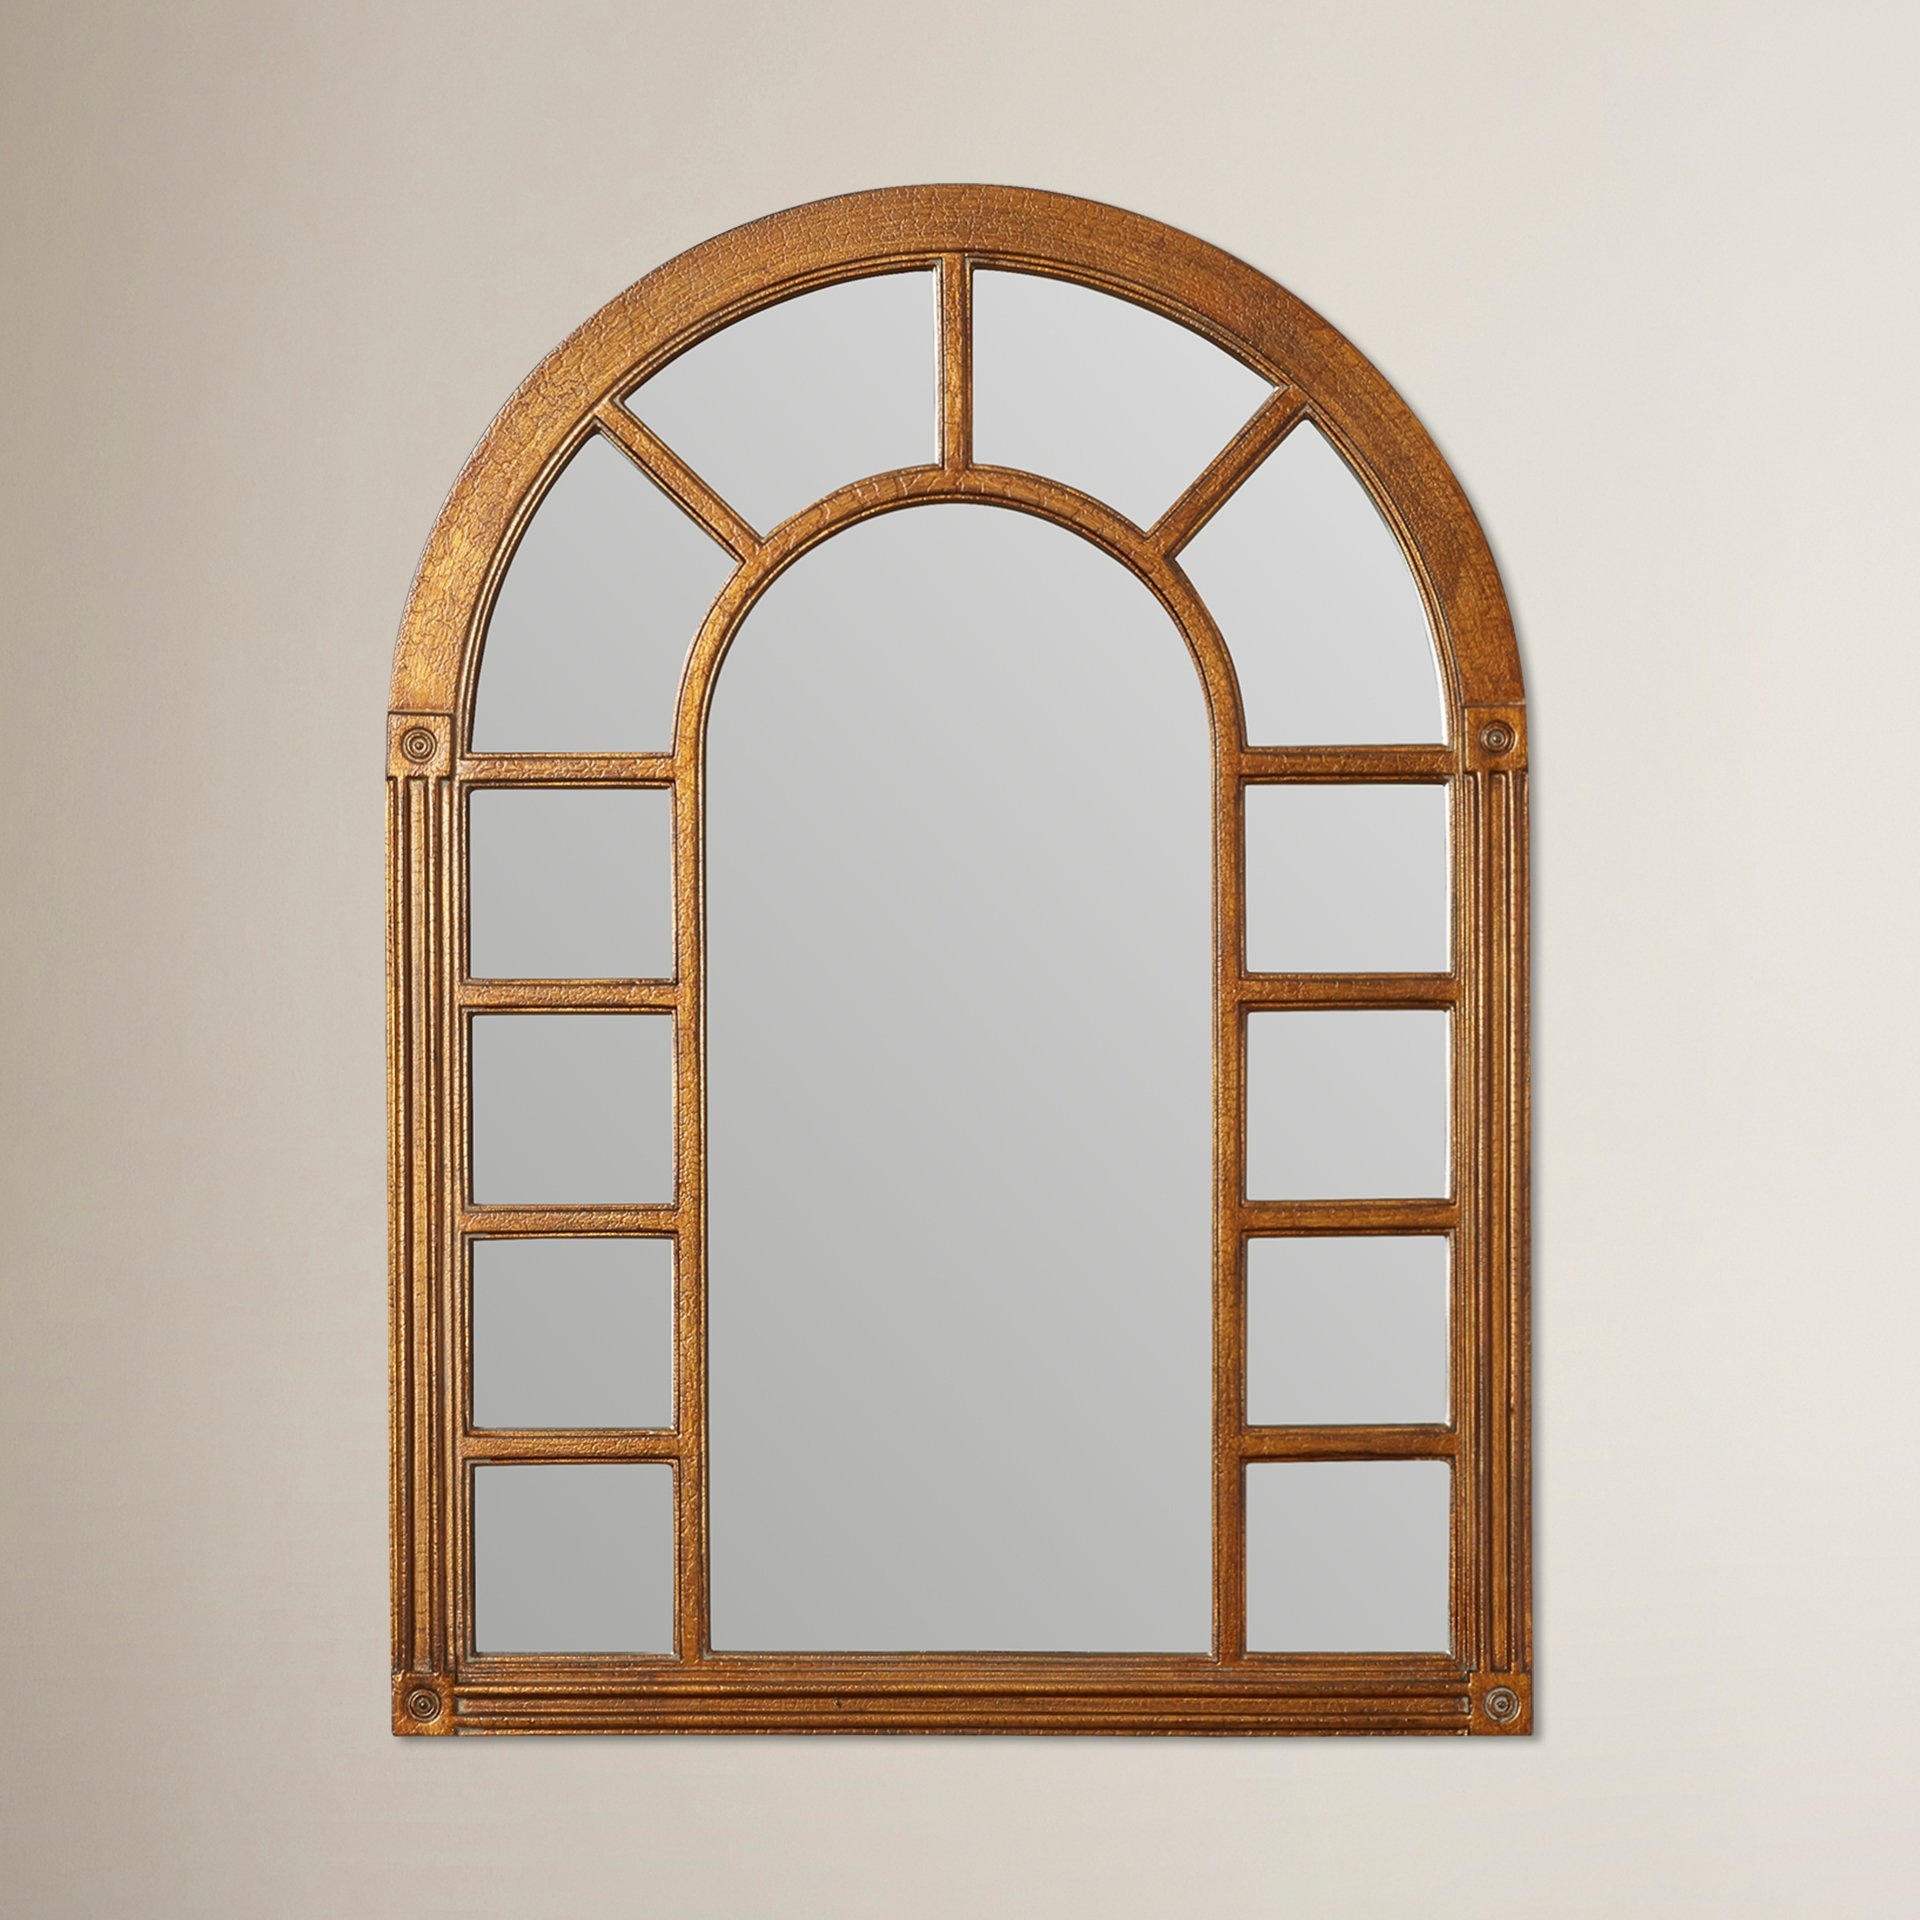 Cathedral Arched Oversized Wall Mirror Reviews Joss Main Throughout Arched Wall Mirror (Image 6 of 15)